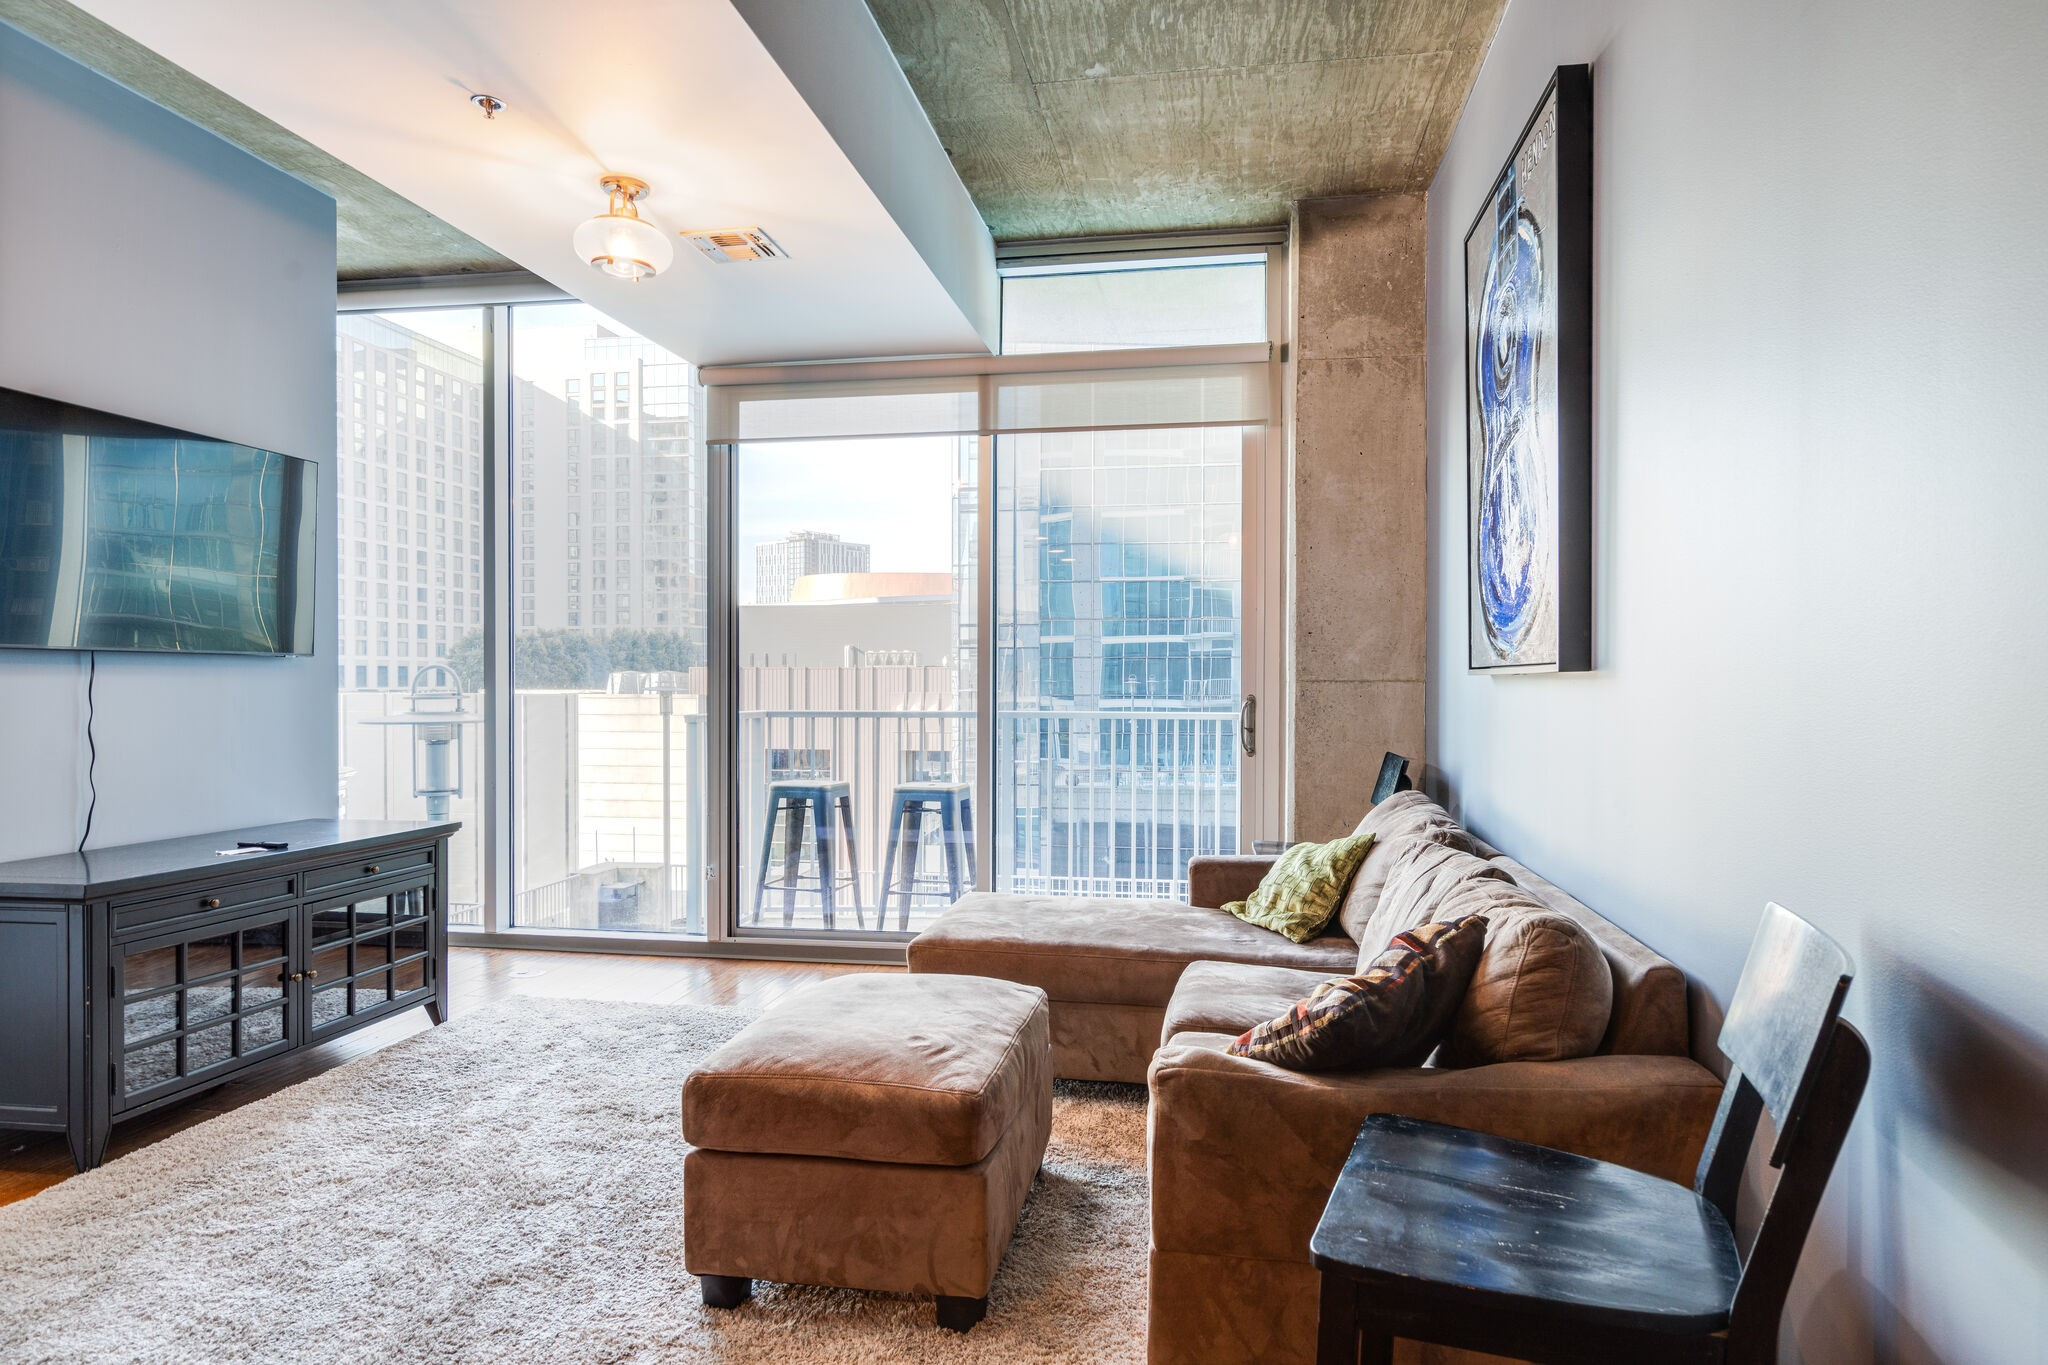 Rare Find: Luxury Condo w/ Balcony, in the Heart of Downtown Nashville, SoBro! 3 minutes to Broadway! Envy-worthy skyline & pool view! Floor to ceiling windows, new appliances, secured parking, custom closet & solar shades!  Amenities Galore: 24/7 Concierge, Rooftop Pool & Terrace, Free WiFi & Coffee, Fitness Center, Designer Firepit, Grills, Herb Garden, Shuffleboard, Pool Table, and Theatre Room. Restaurants: Bakersfield, Etch, Farmhouse, Jimmy Johns and Starbucks are located downstairs!